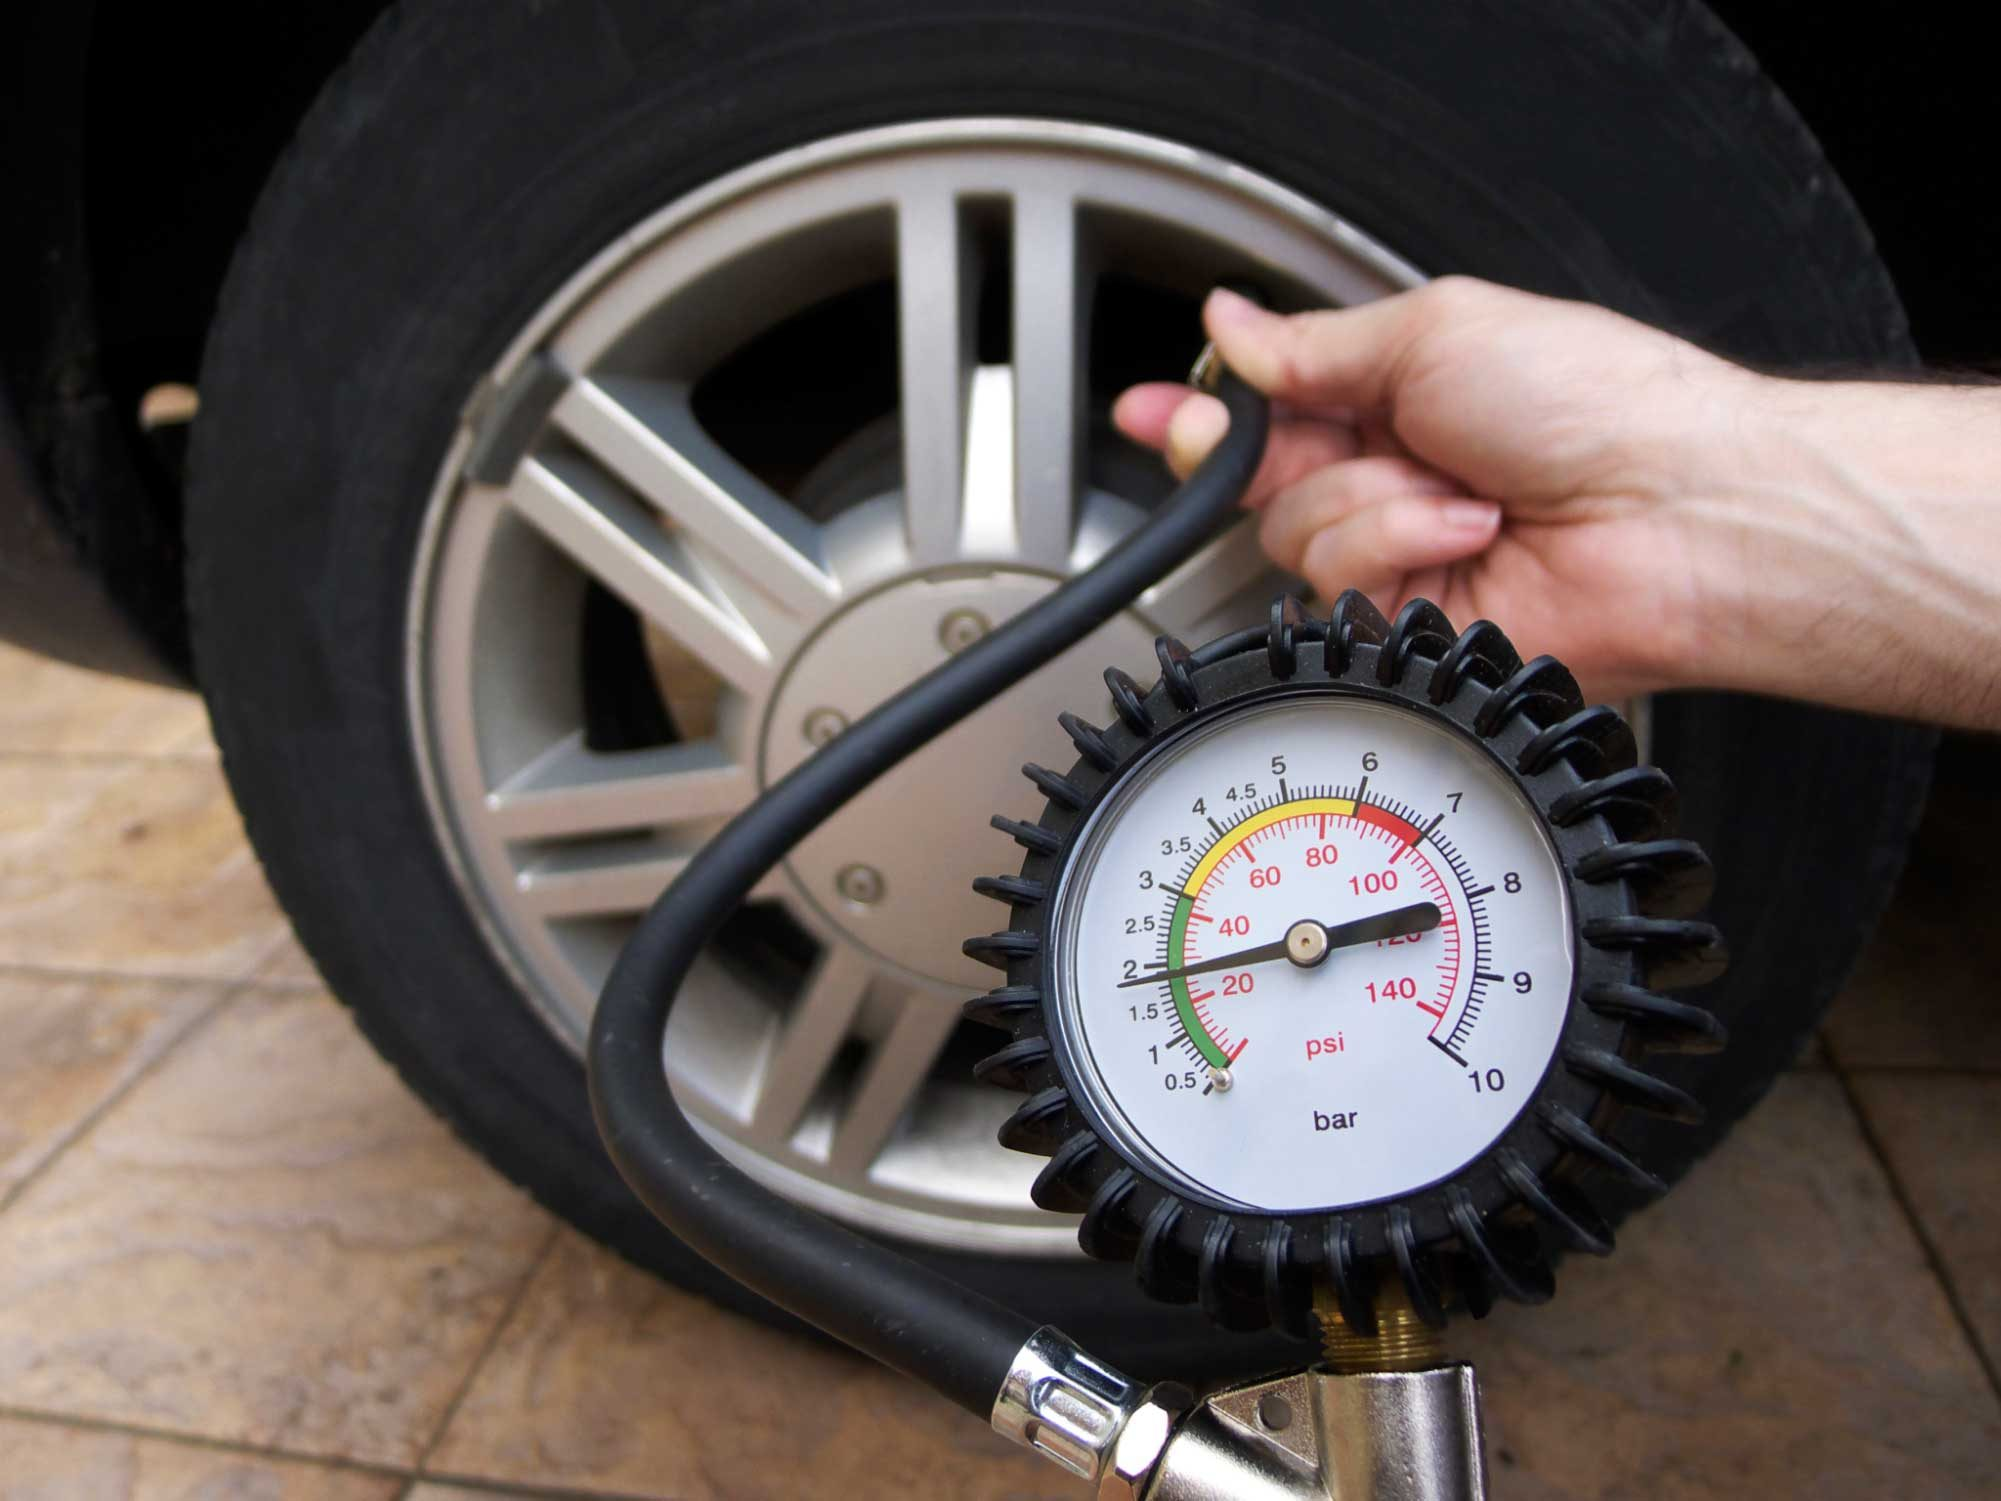 Don't Over-Inflate Your Tires